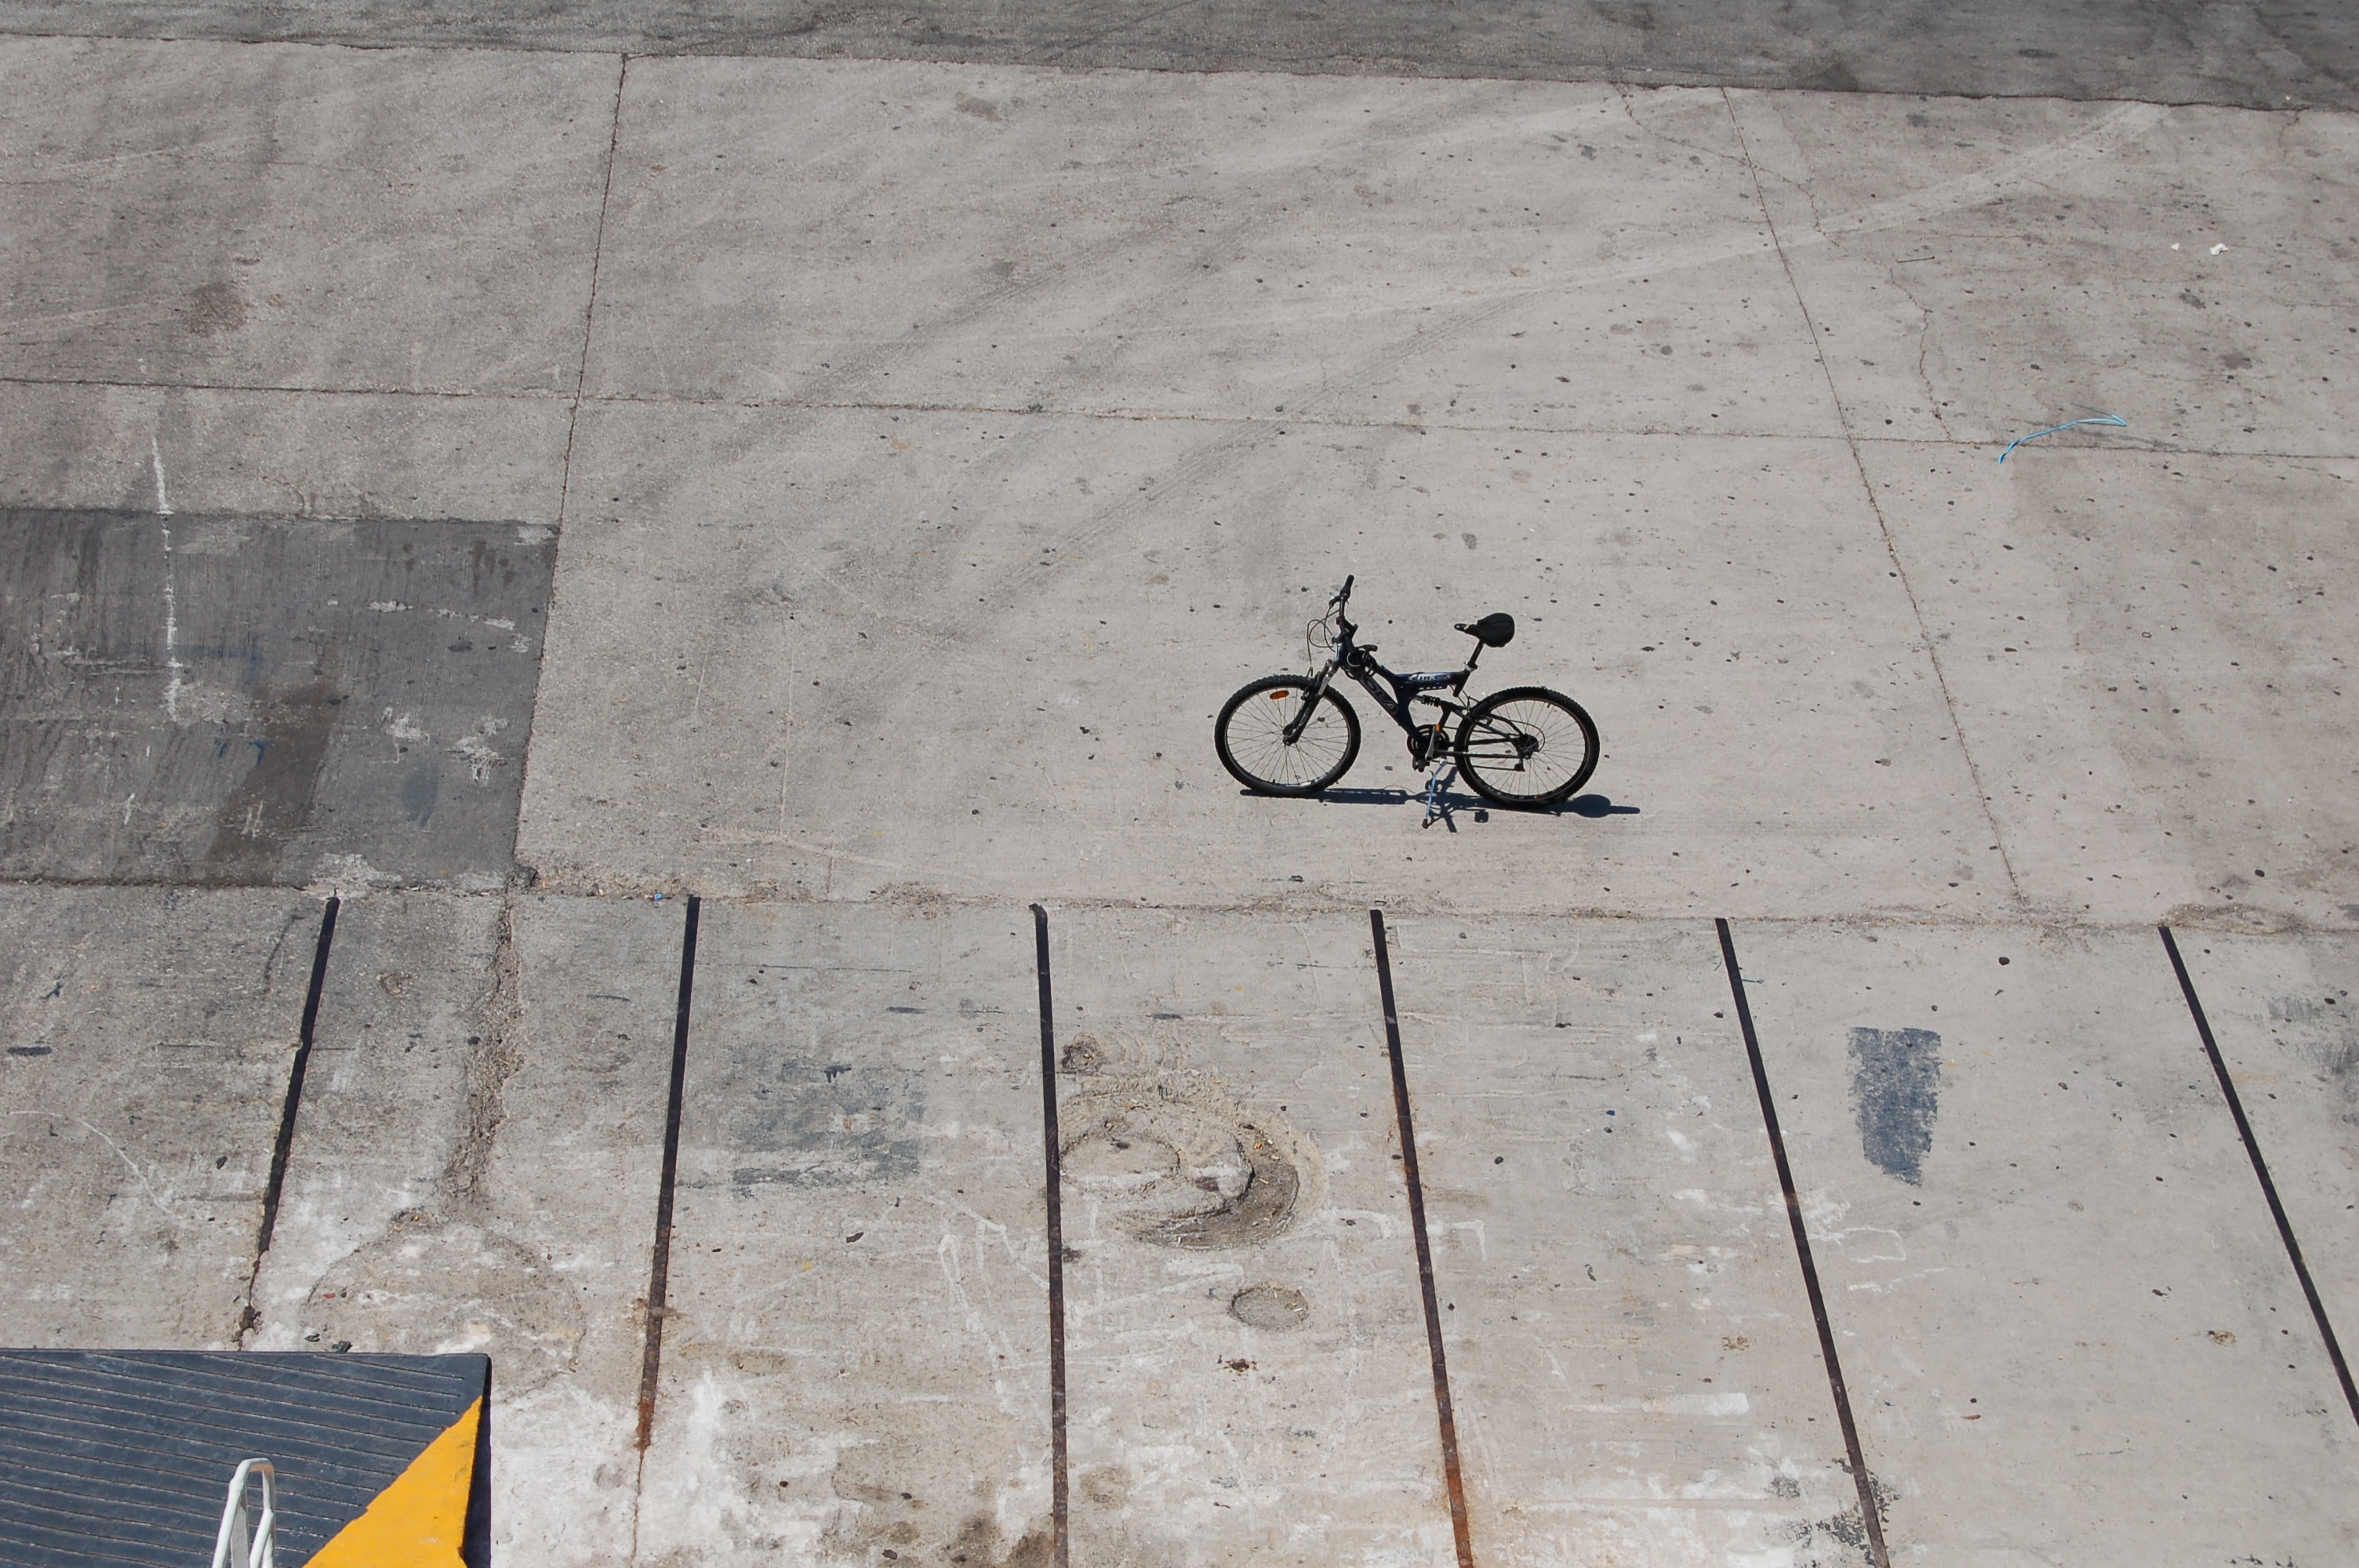 black bicycle parked on road